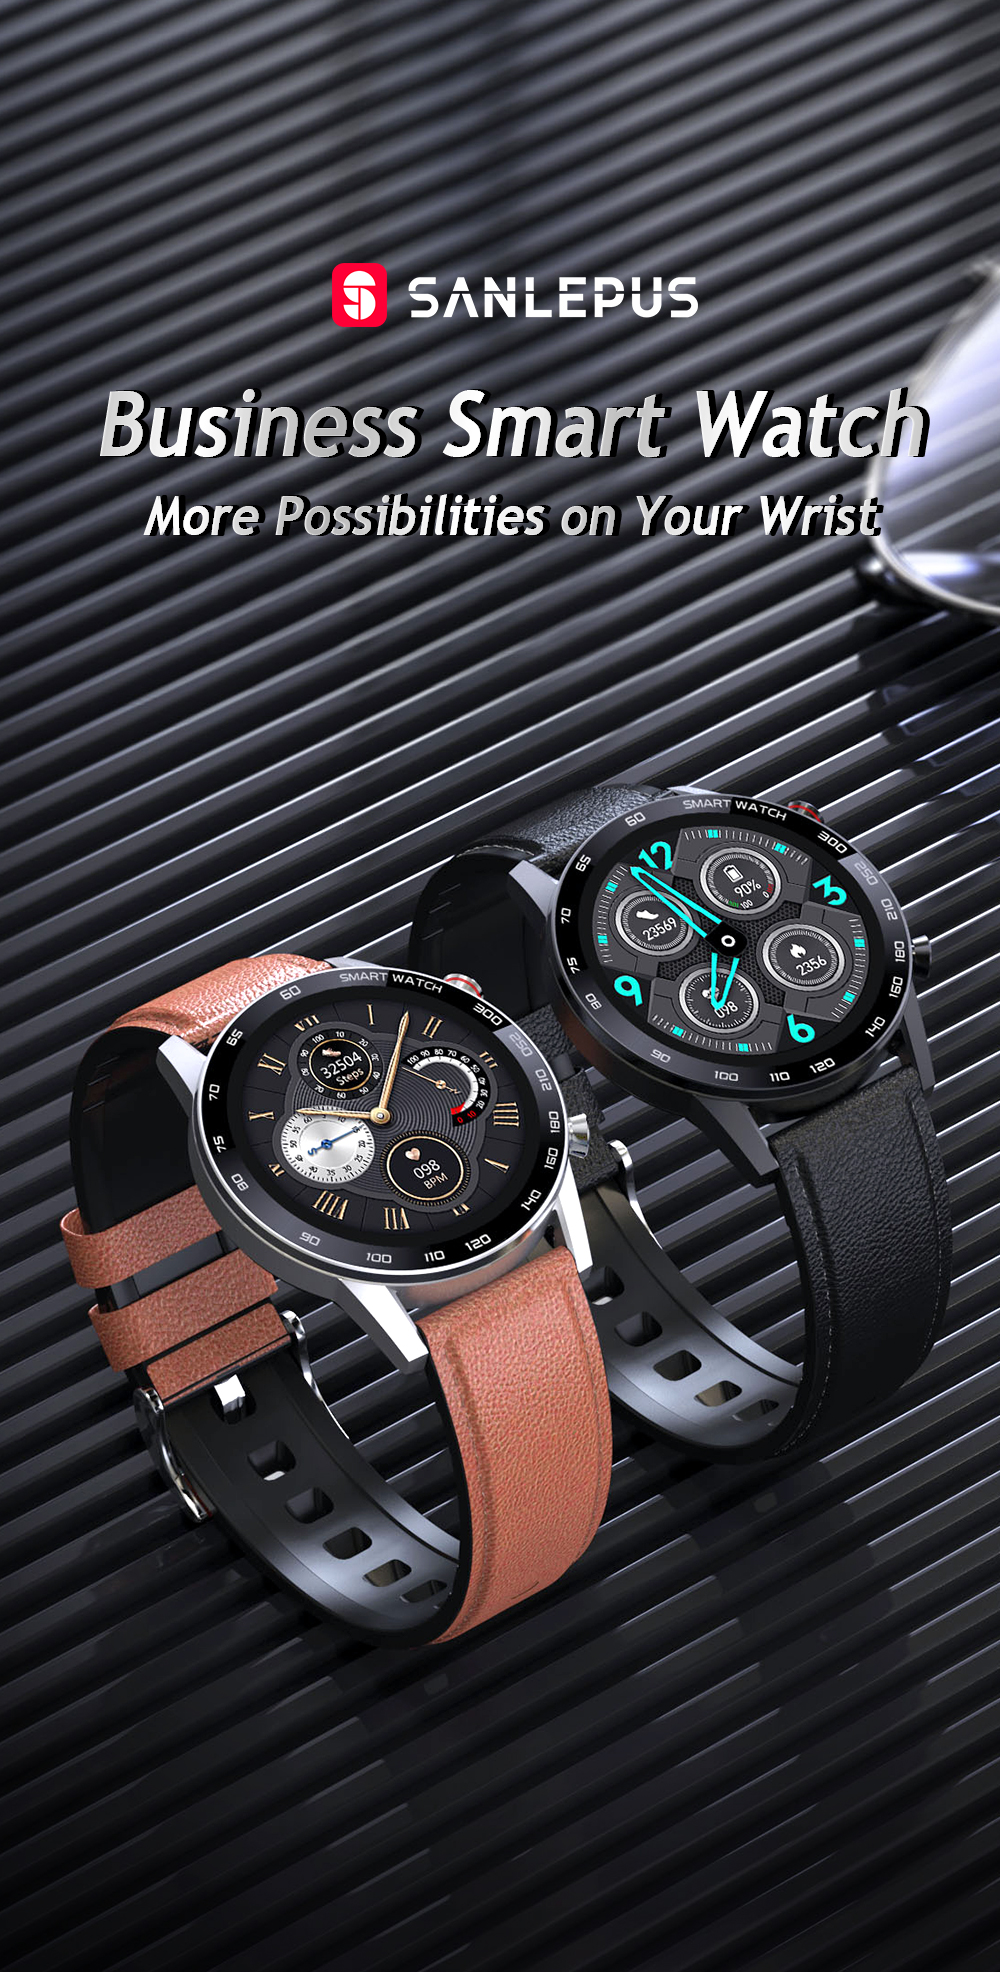 H73f2414ba6e547c0af9c4a98dd28f2aeN 2021 SANLEPUS ECG Smart Watch Dial Call Smartwatch Men Sport Fitness Bracelet Clock Watches For Android Apple Xiaomi